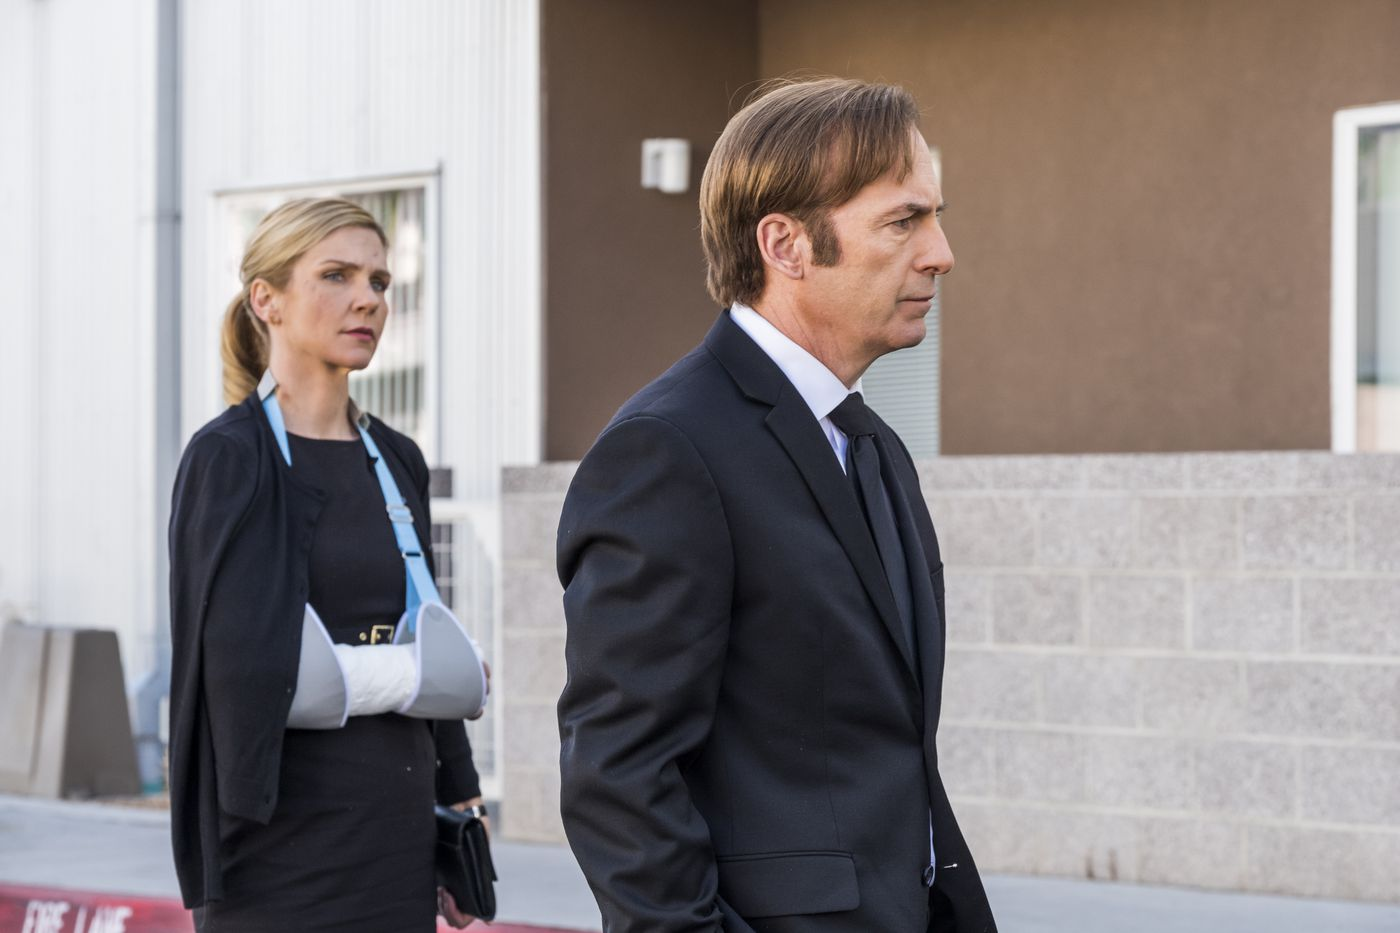 TV picks: 'Better Call Saul,' 'Lodge 49,' Philly's Lee Daniels on PBS and more